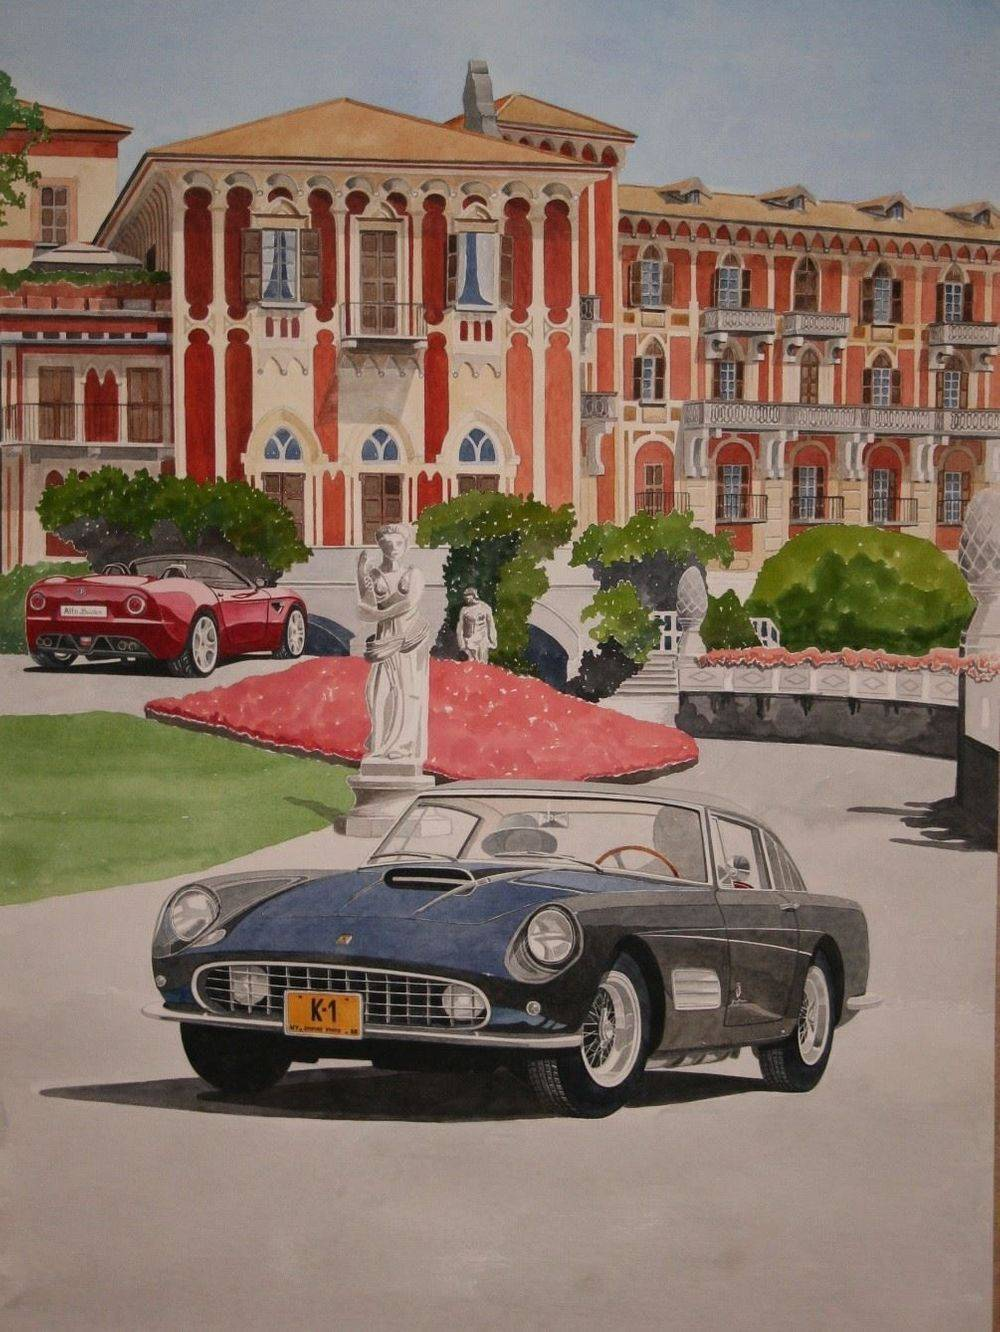 Each year a magnificent concours takes place at the Villa D'Este at lake Como in Italy. There are 2 main competitions, one for classic cars and the other for prototypes. Artists are invited prior to the coming years event to paint a picture to be used for publicity material and this artwork has to include the two winning cars from the previous year. I was invited to submit a piece of artwork for this competition and here it is in all its glory, showing the Ferrari 410 Superamerica and Alfa Romeo Spider. Sadly I didn't win but it was an honour to take part. The artwork, in watercolour is A1 in size and is now available for purchase at a REDUCED cost of £900